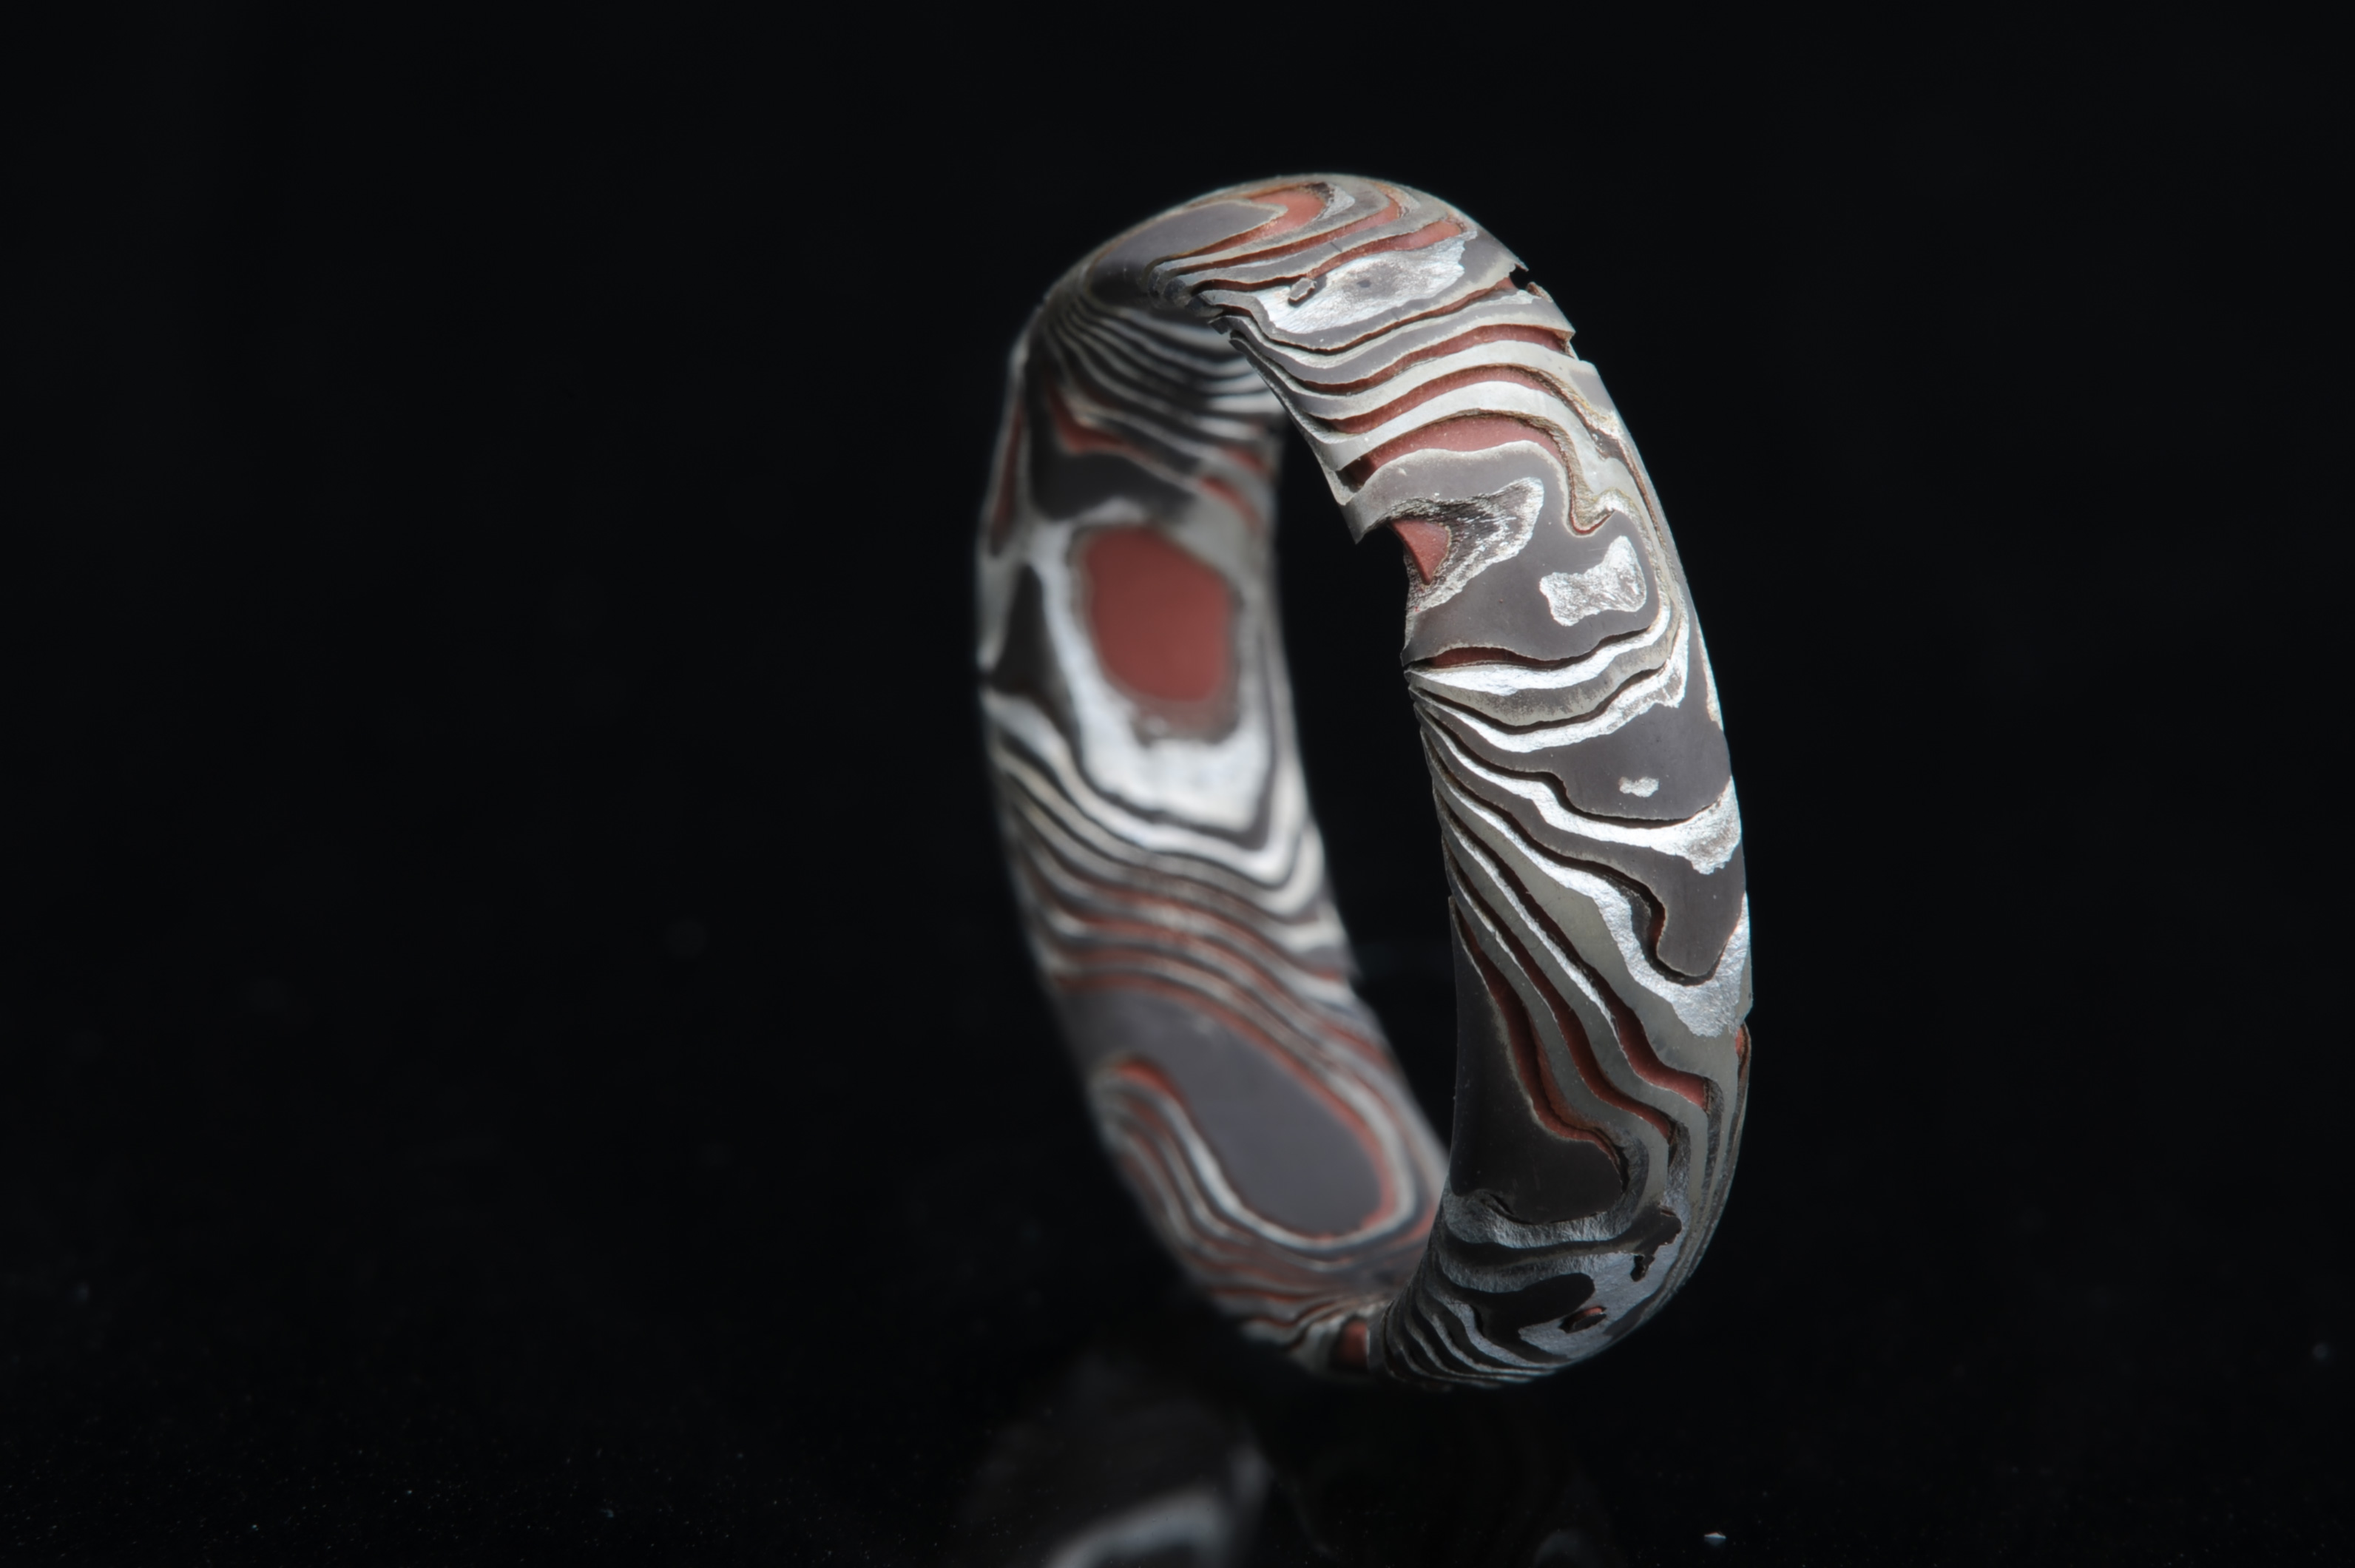 in and white search fltrndky combination engagement wedding gane ring jewelry grain metal rings mokume wood bands